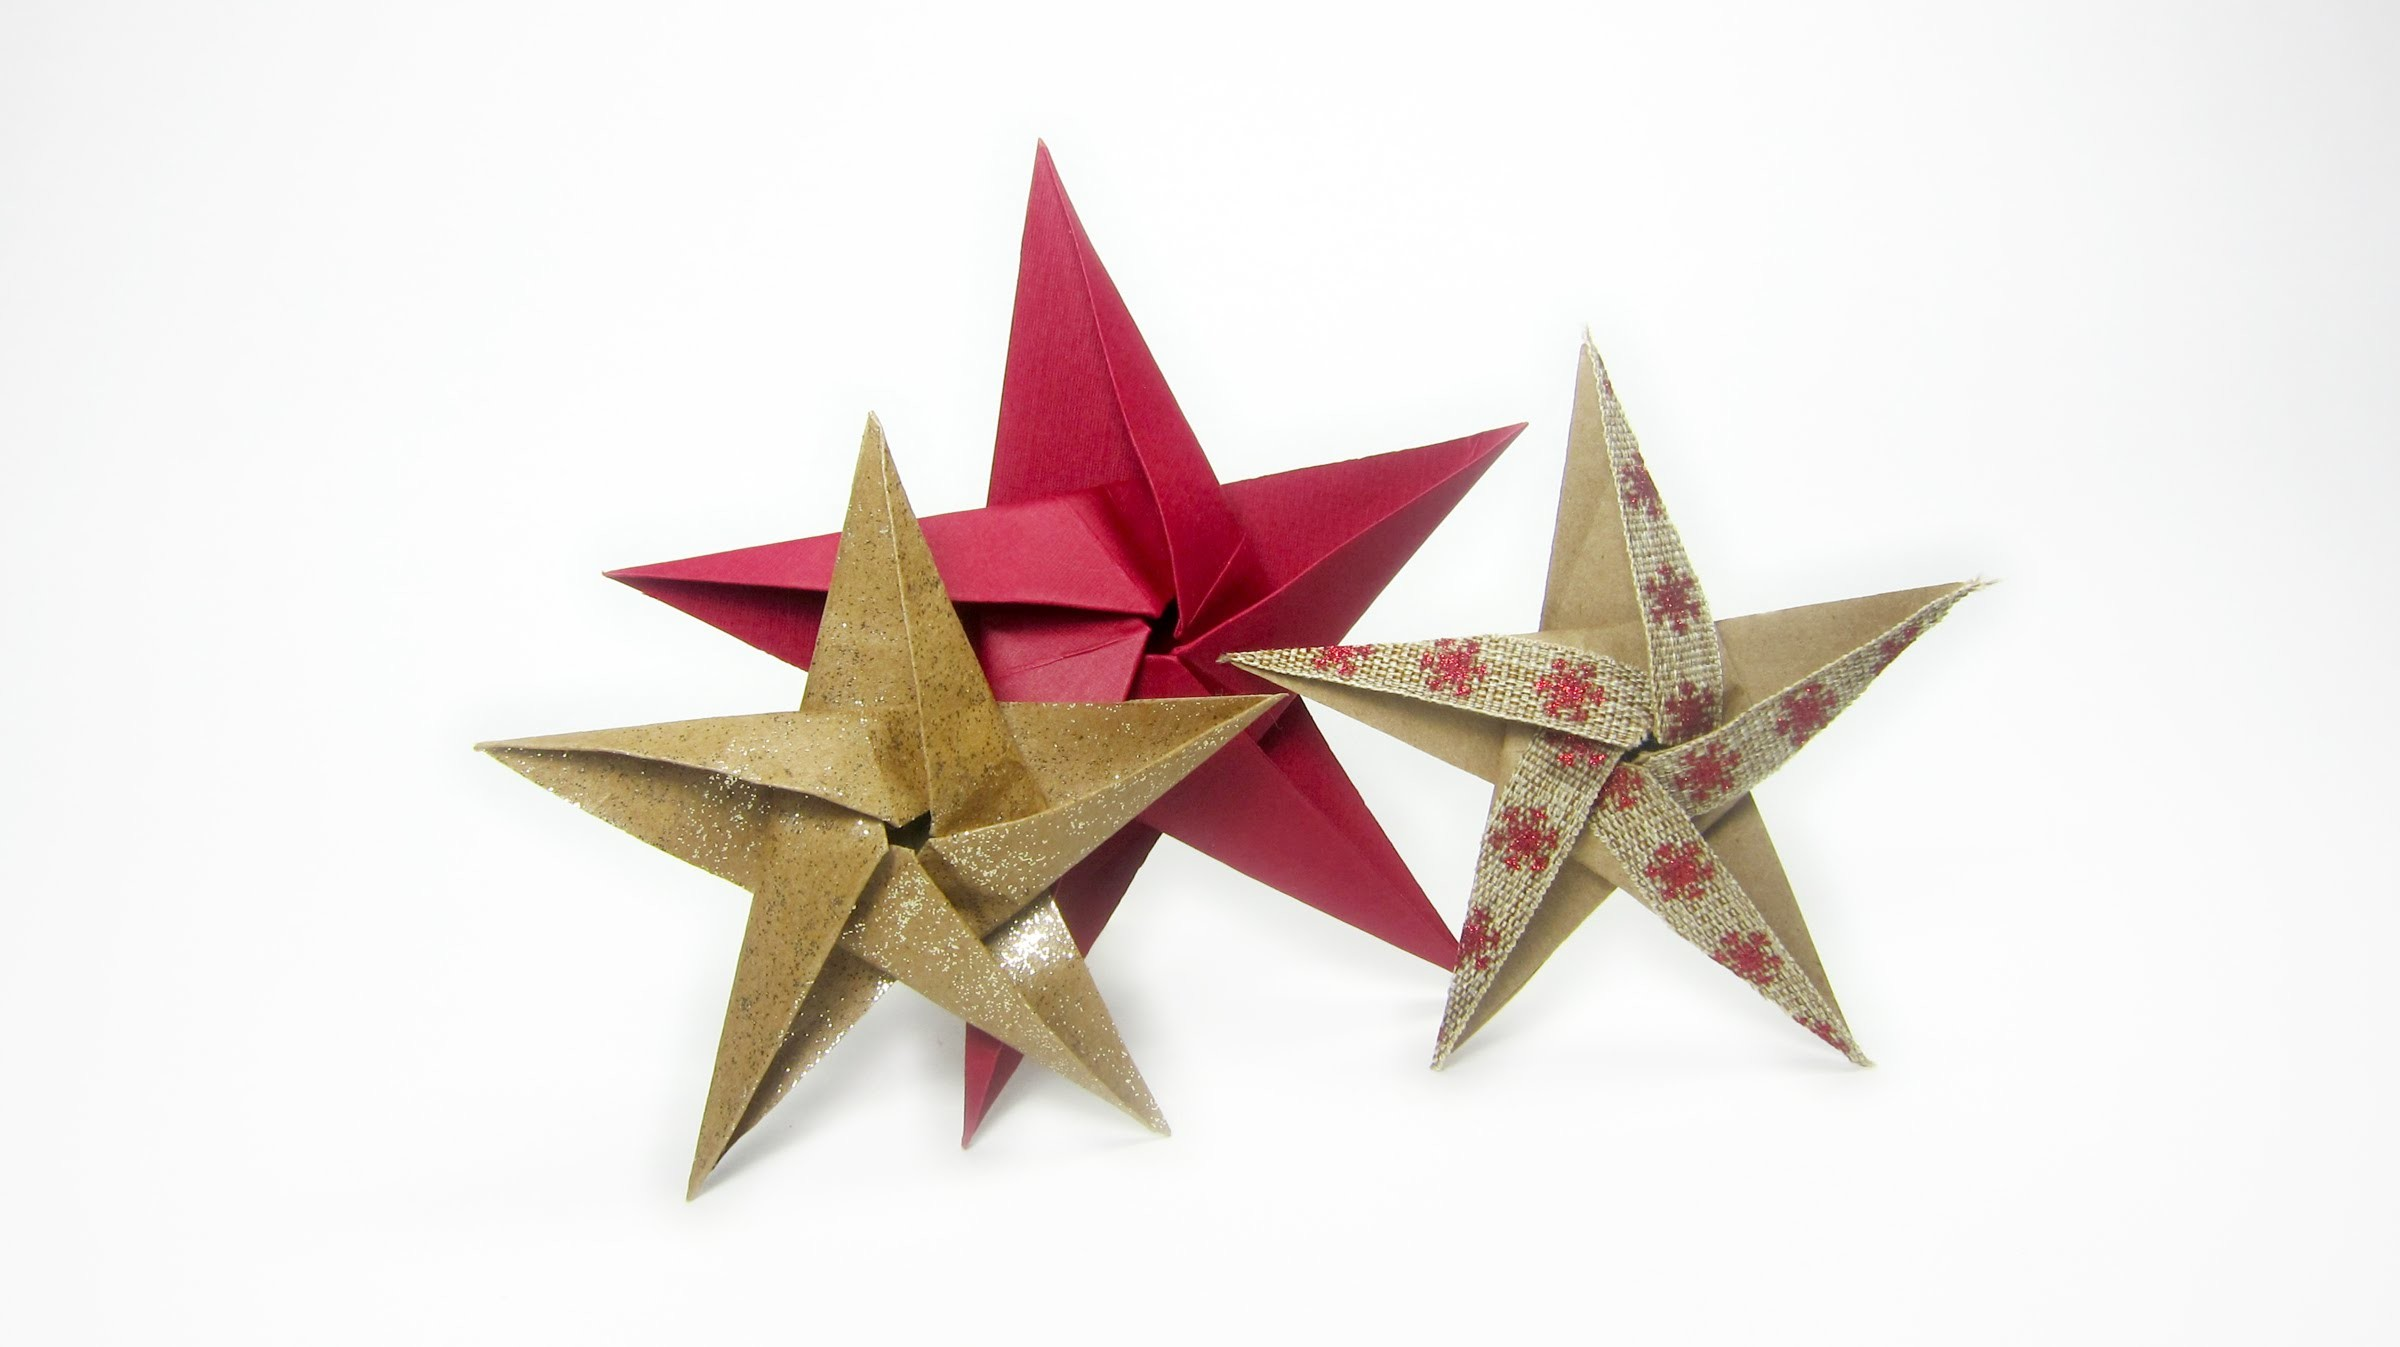 5 Pointed Origami Star Folding - DIY